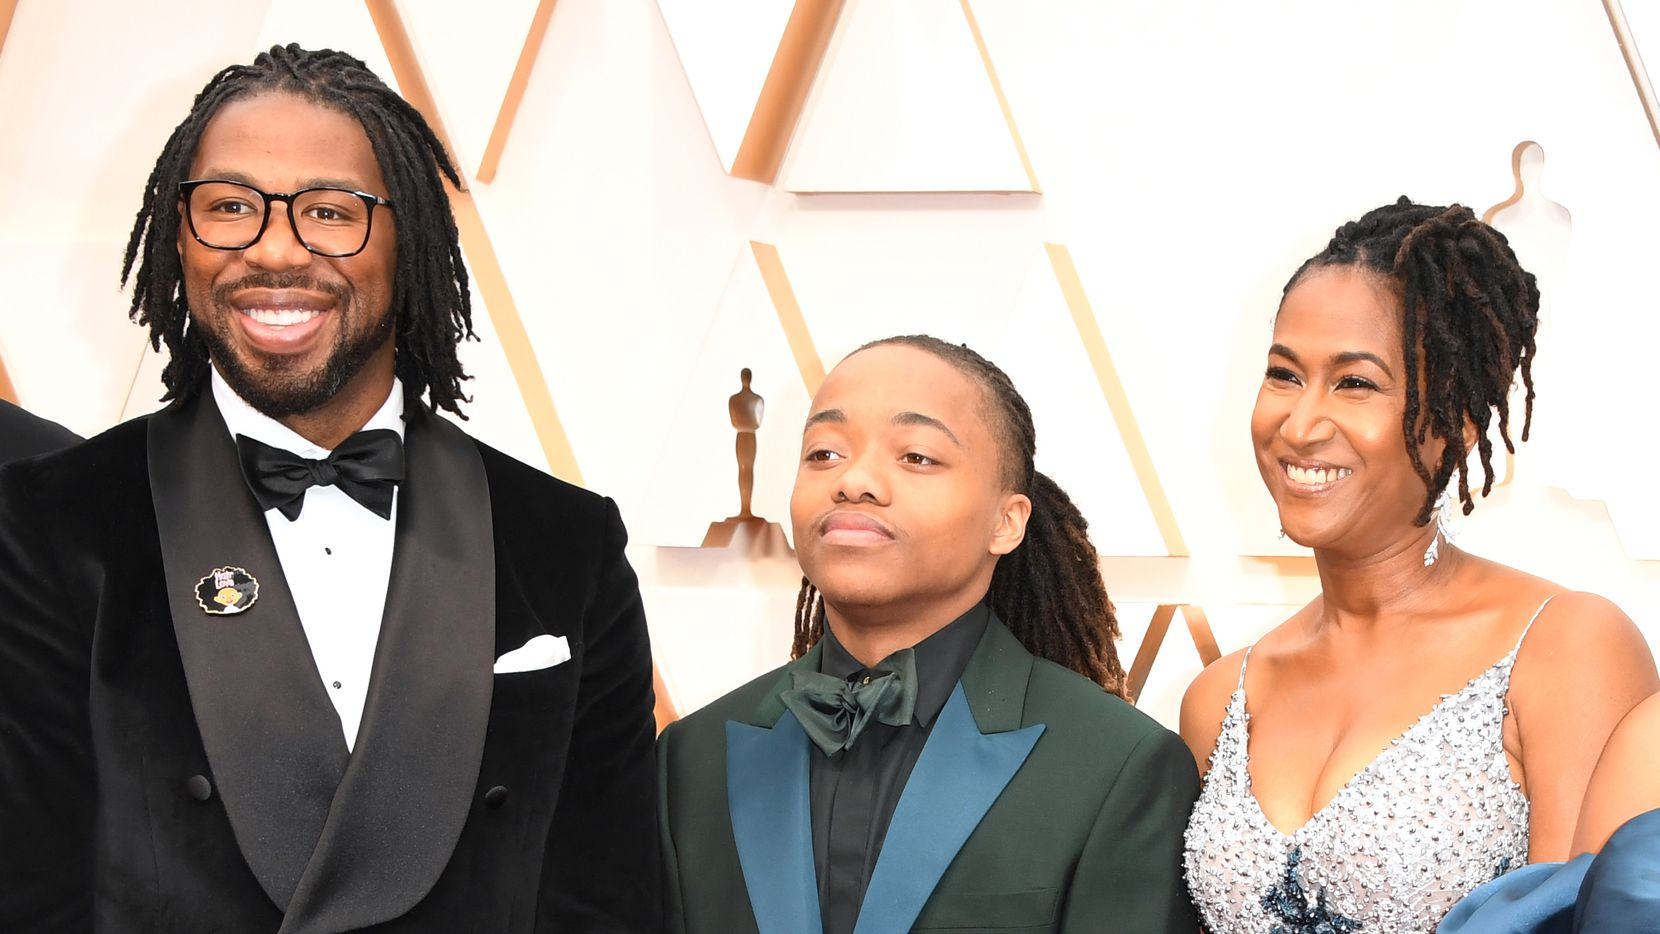 US director Matthew A. Cherry, left, US producer Karen Rupert Toliver, right, and Deandre Arnold, the Texas teen who was told his dreadlocks violated school dress code, arrive for the 92nd Oscars at the Dolby Theatre in Hollywood, California on February 9, 2020.